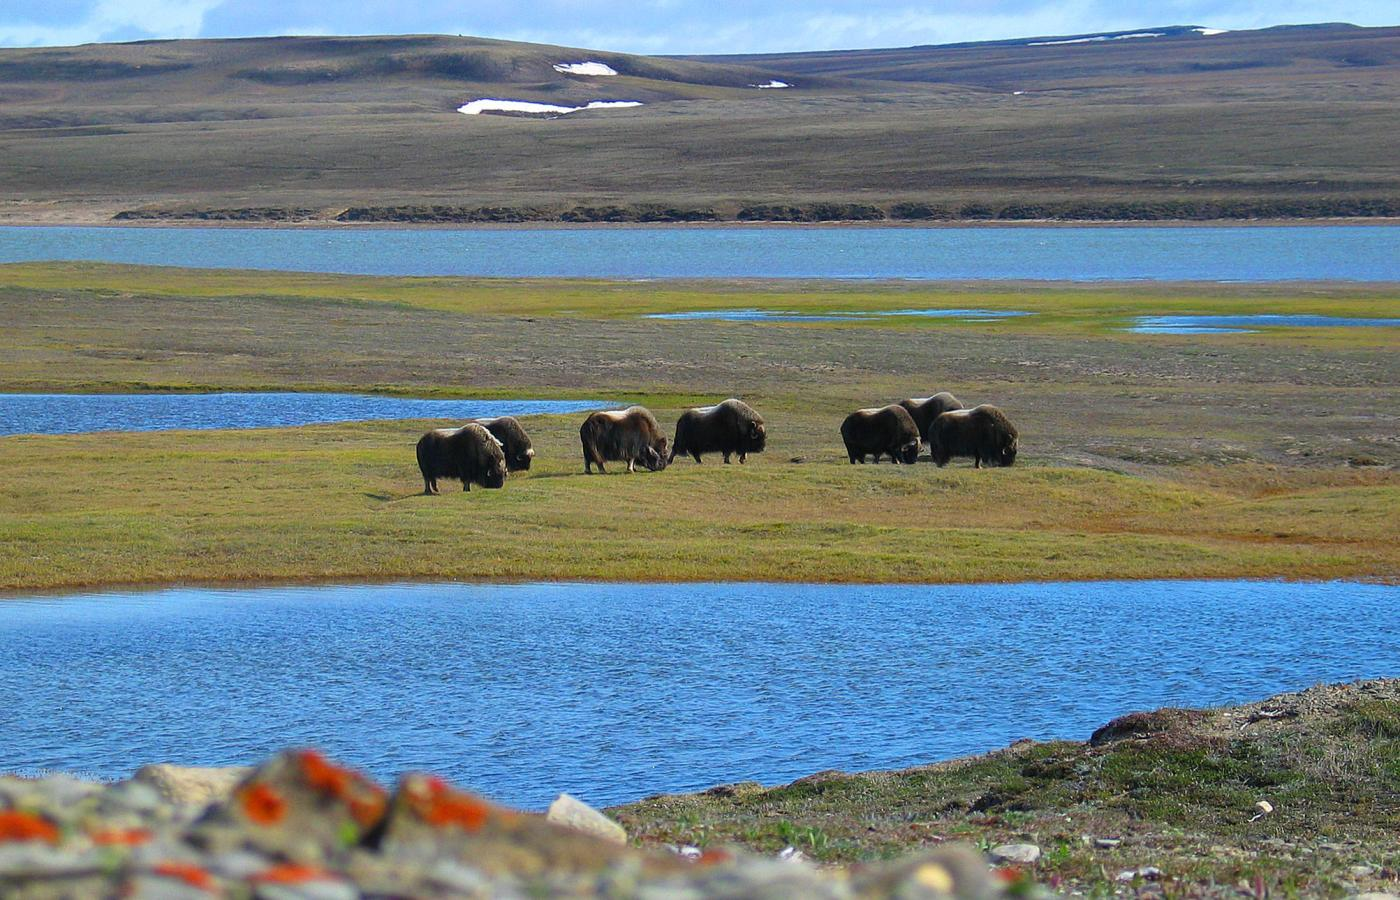 muskoxen on the banks of the thomsen river in aulavik national park